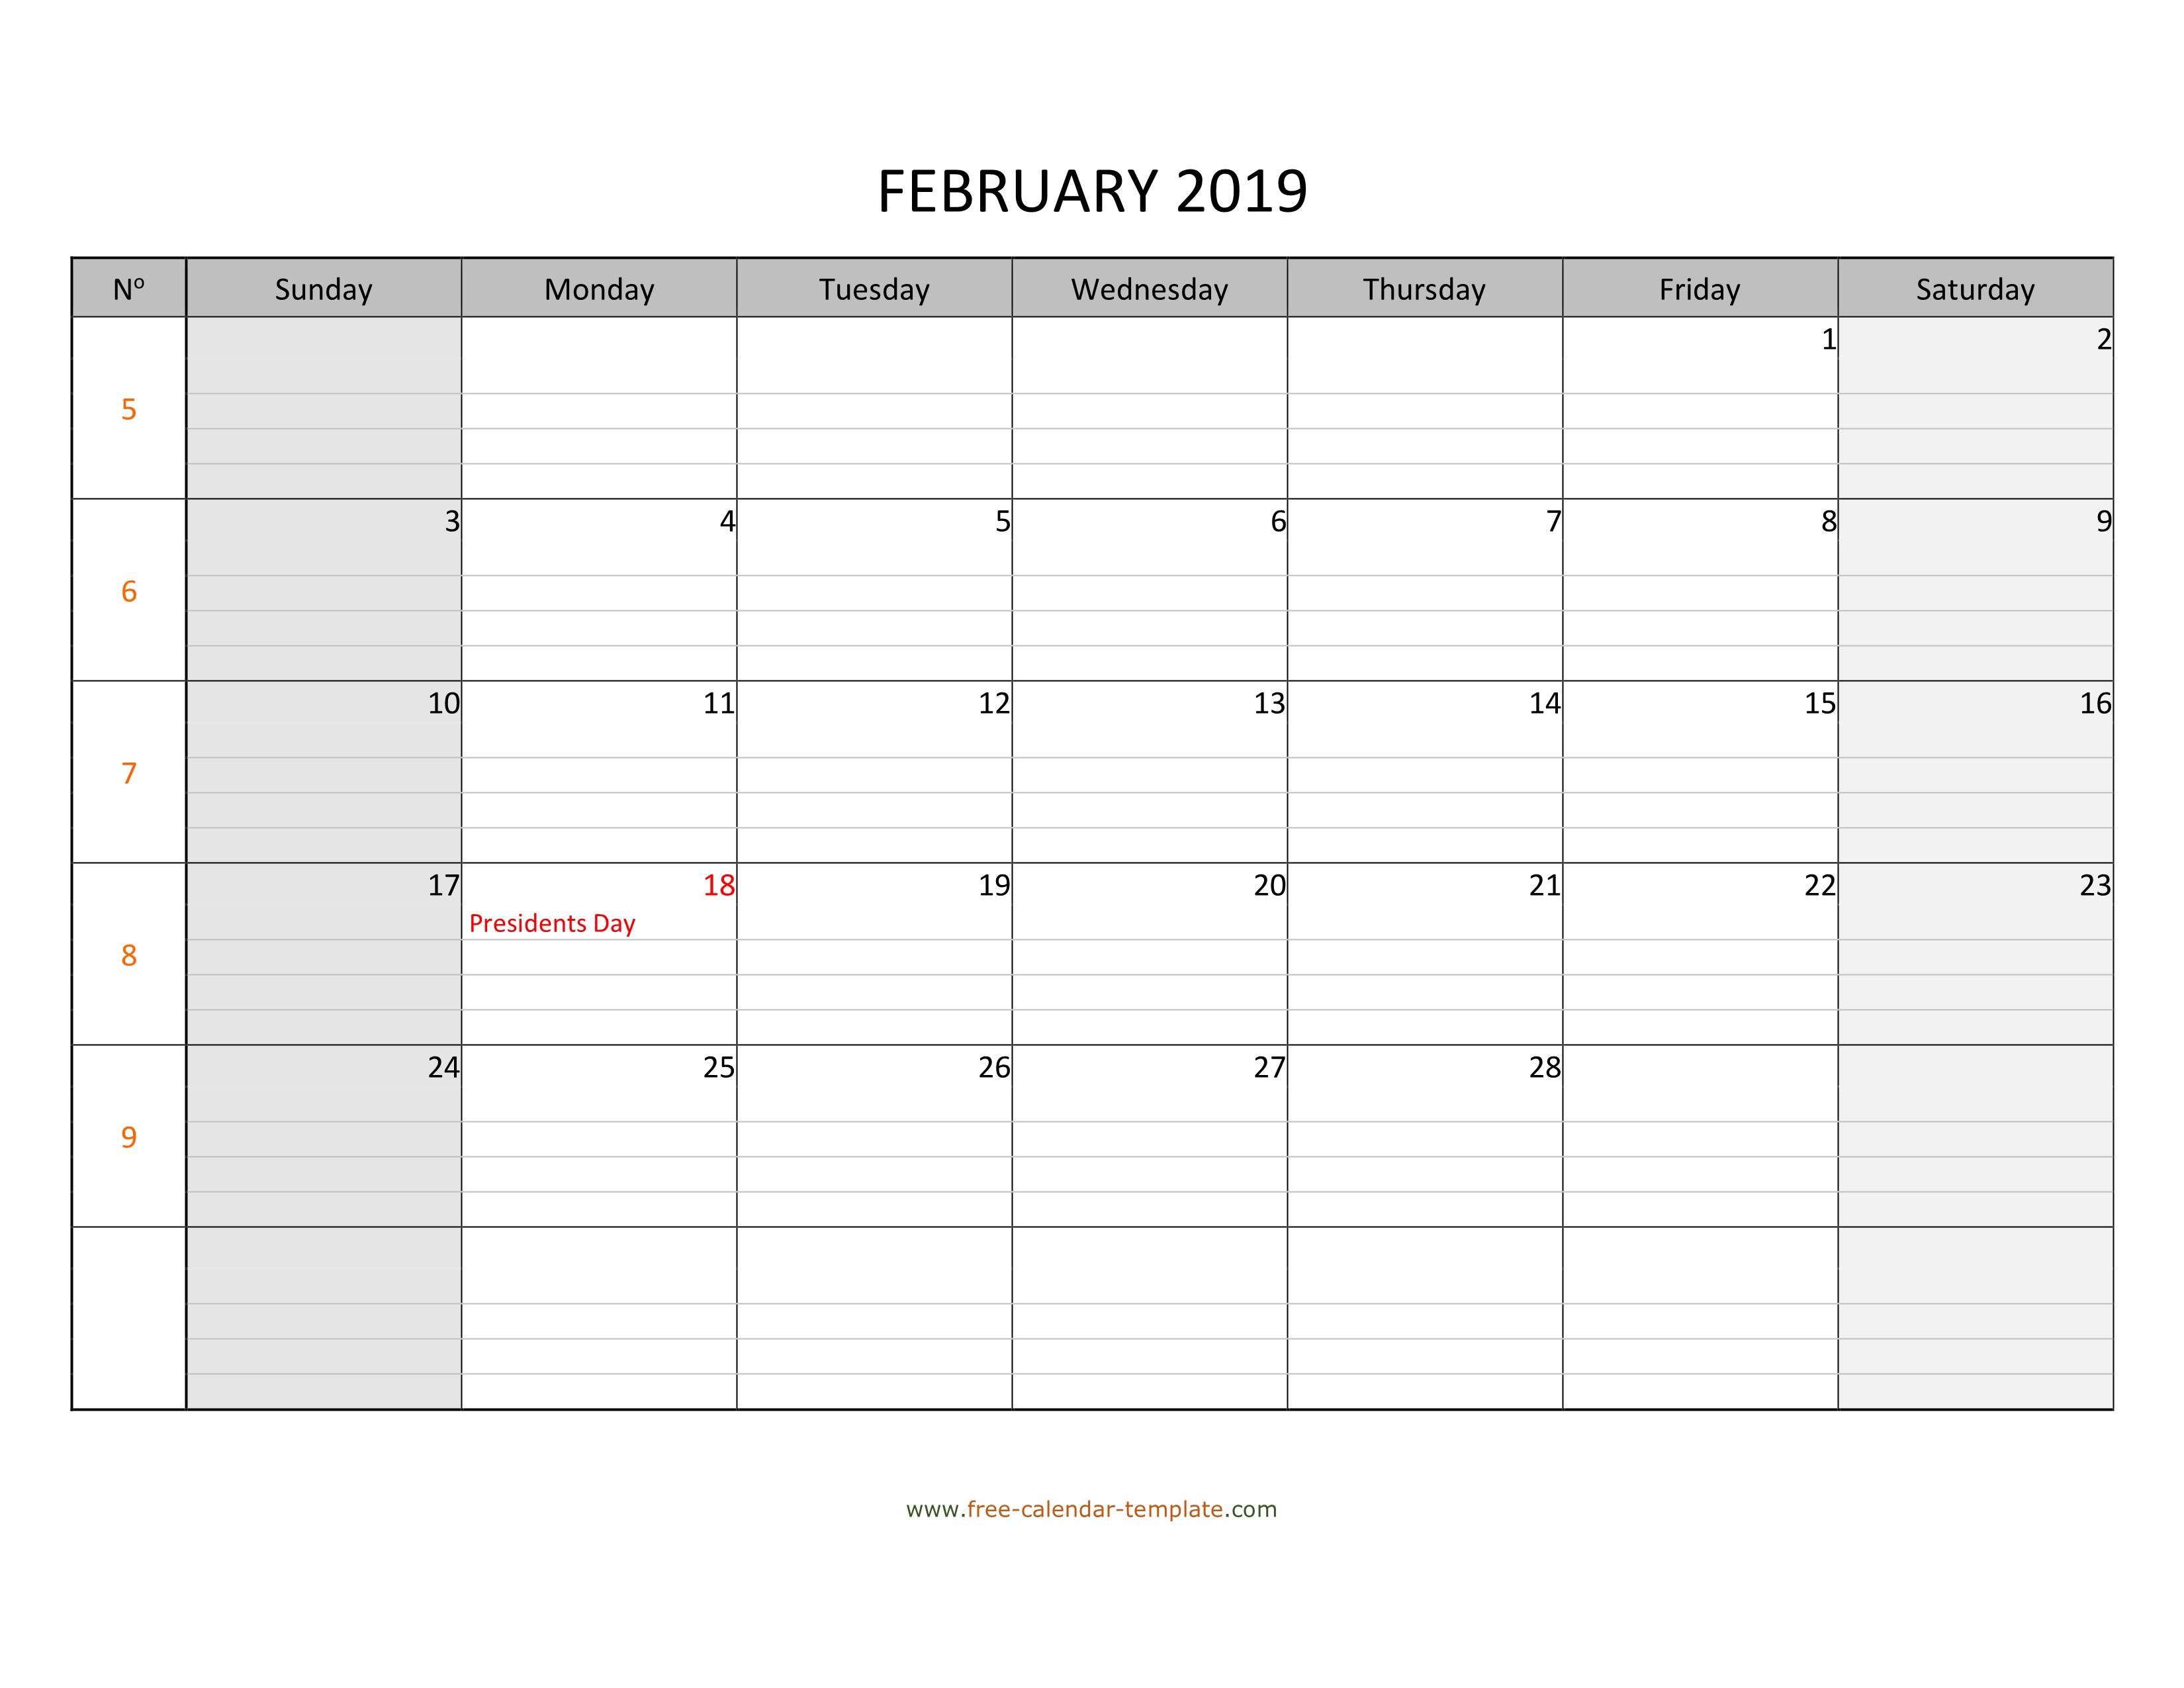 February 2019 Calendar Free Printable With Grid Lines Designed